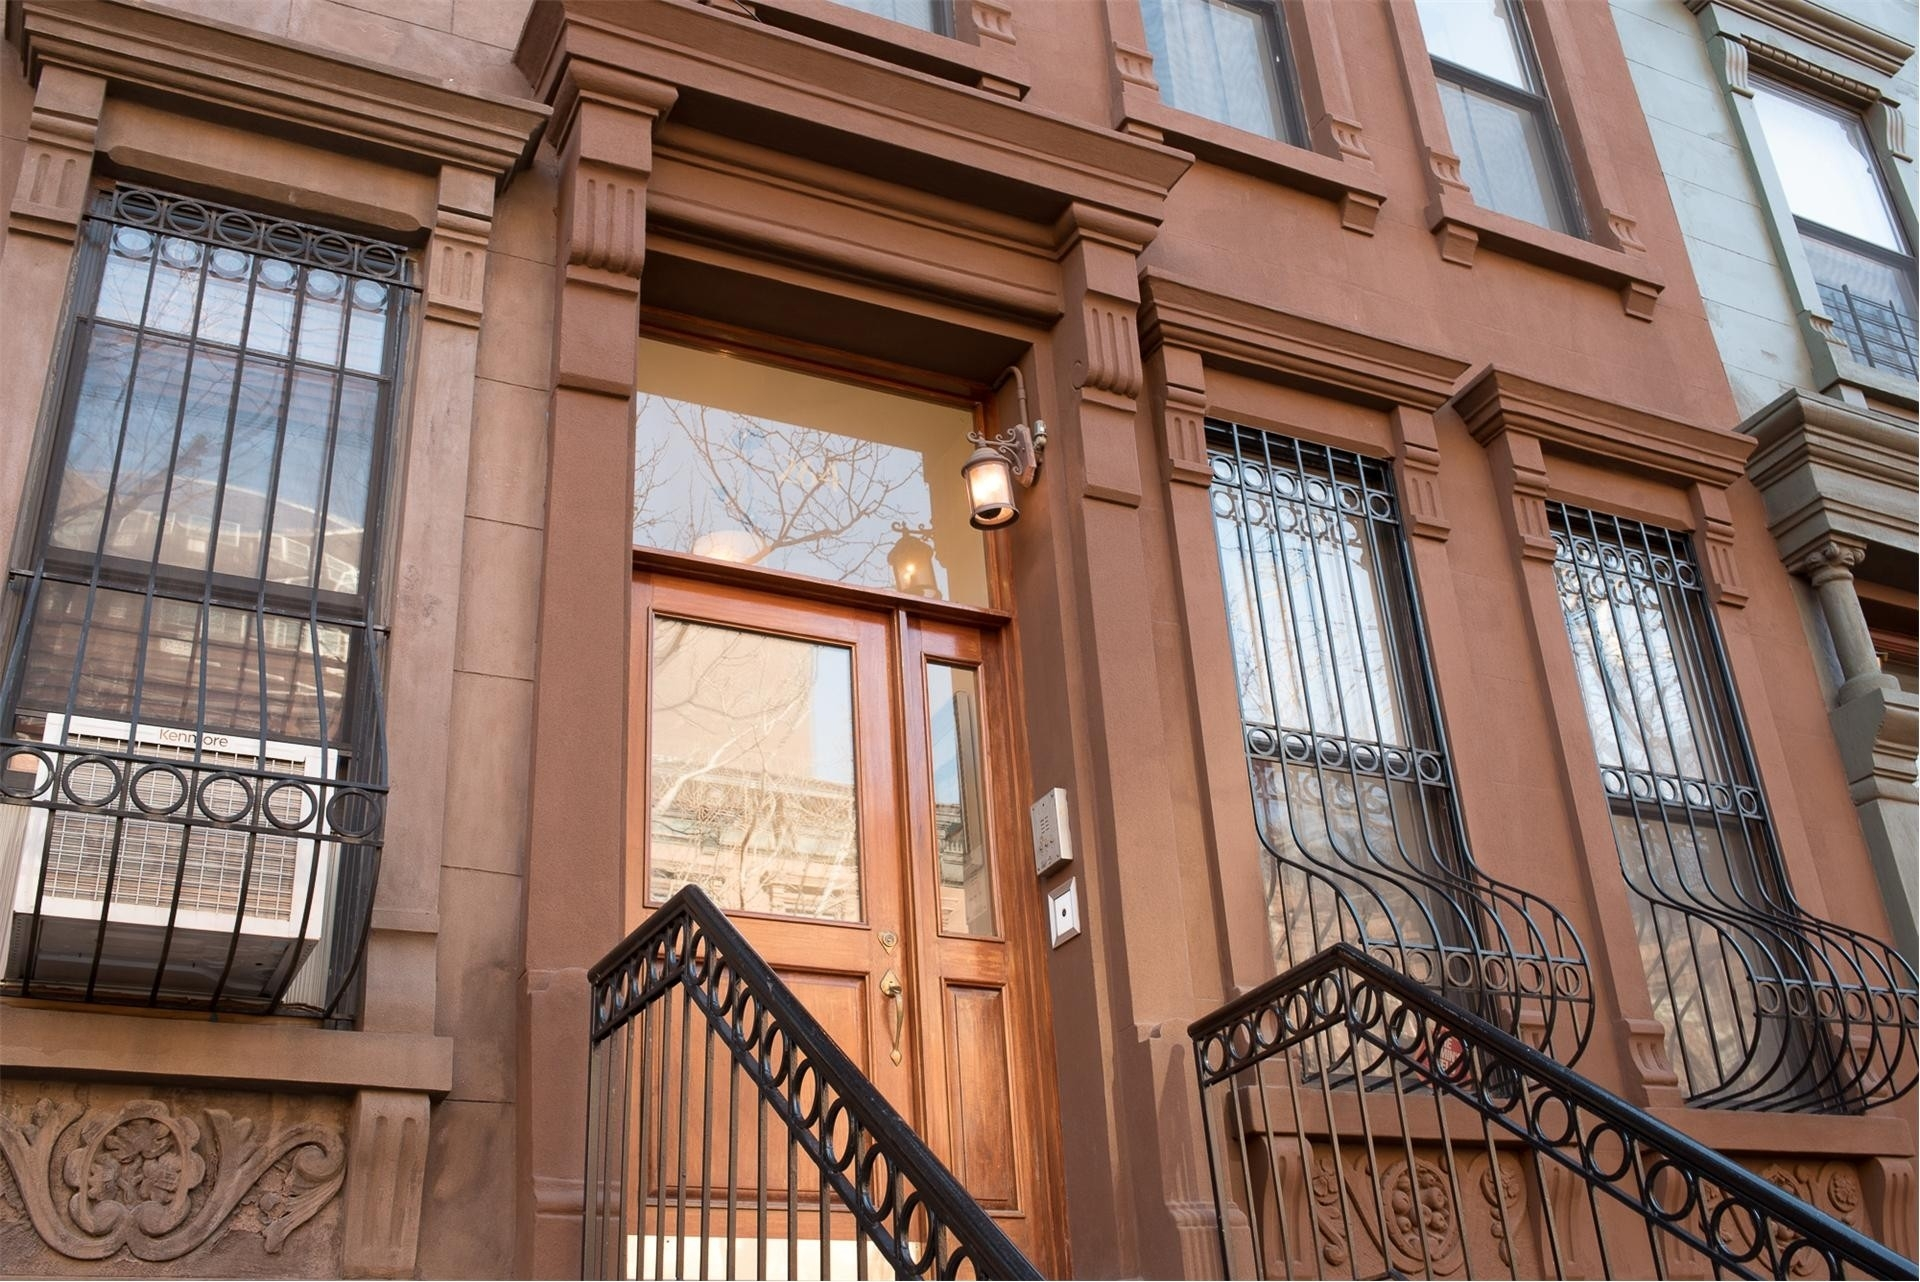 Property en 264 West 132nd St, 2 New York